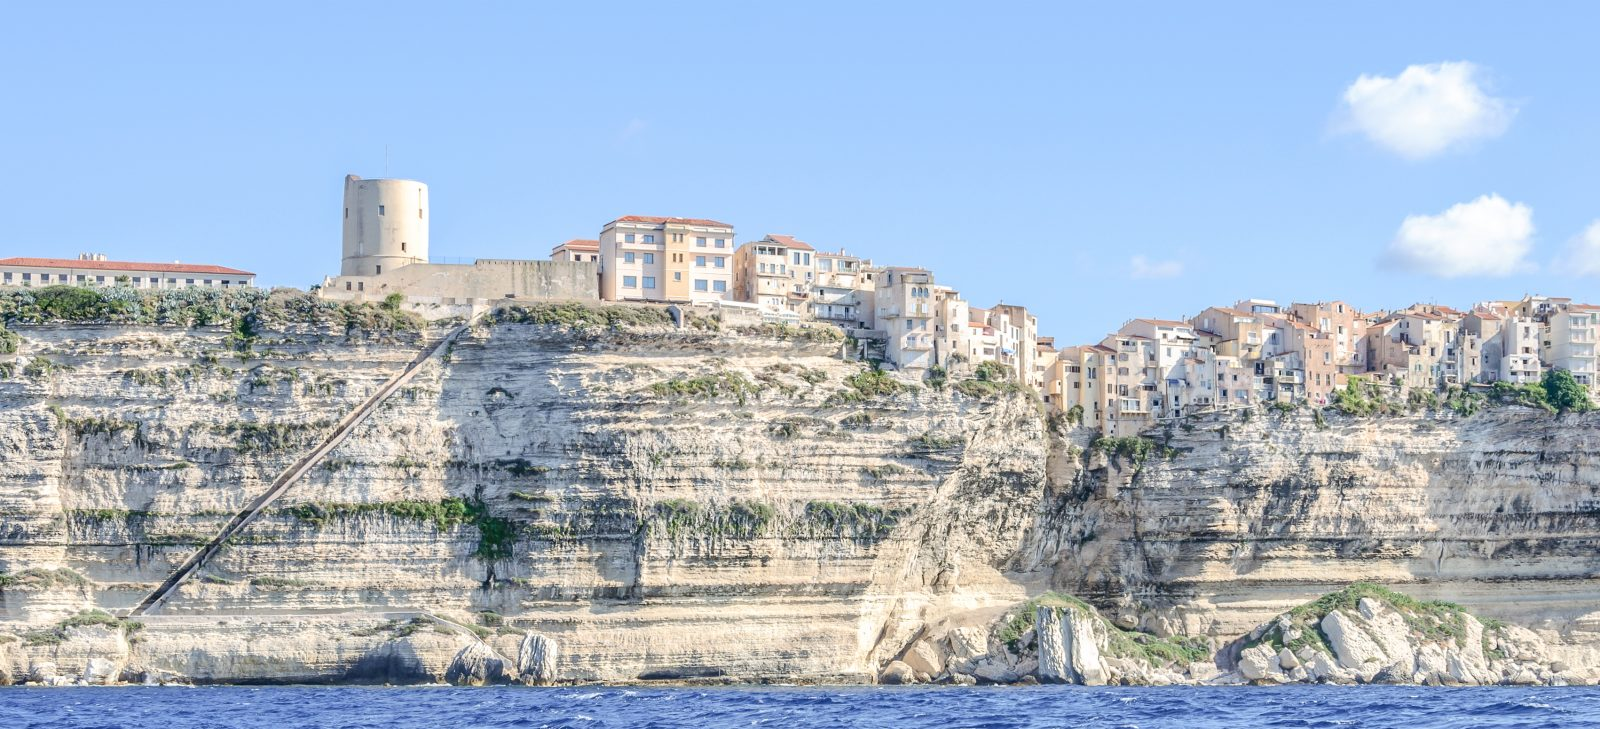 FMR_travelblog-Weekend-Bonifacio-Voyage-Corse-escalier-Aragon